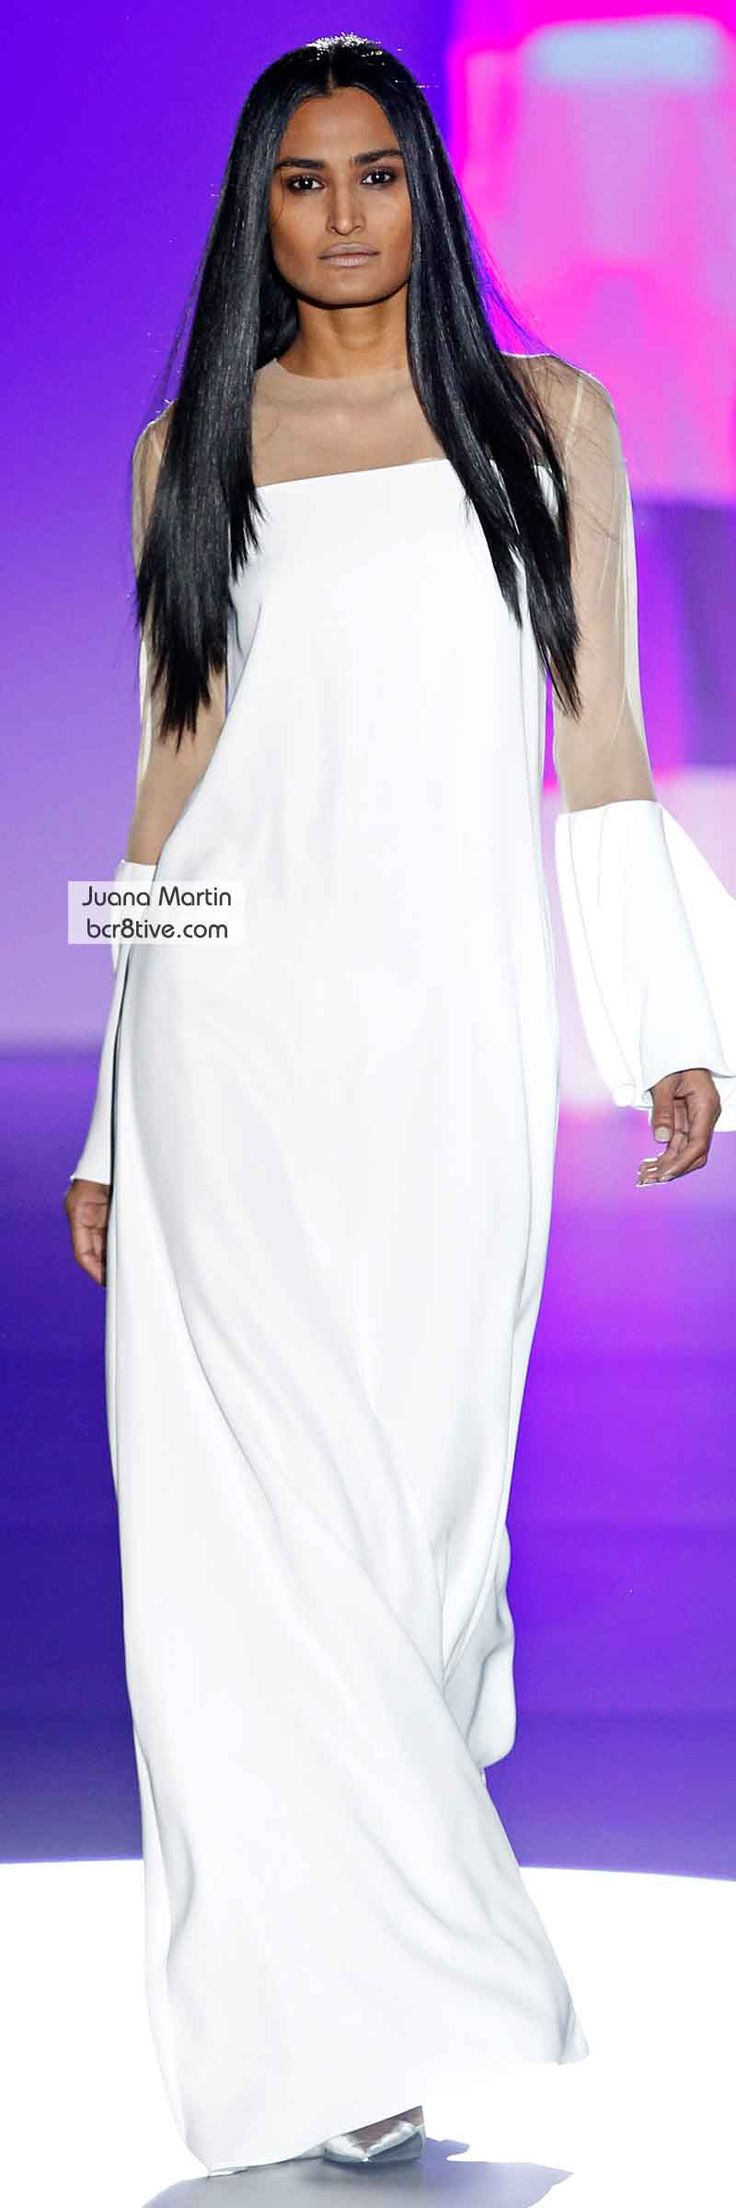 Juana Martin FW 2014 #MadridFashionWeek. I bet we could fashion this into a classy preaching robe.  Ideas, seamsters/seamstresses?